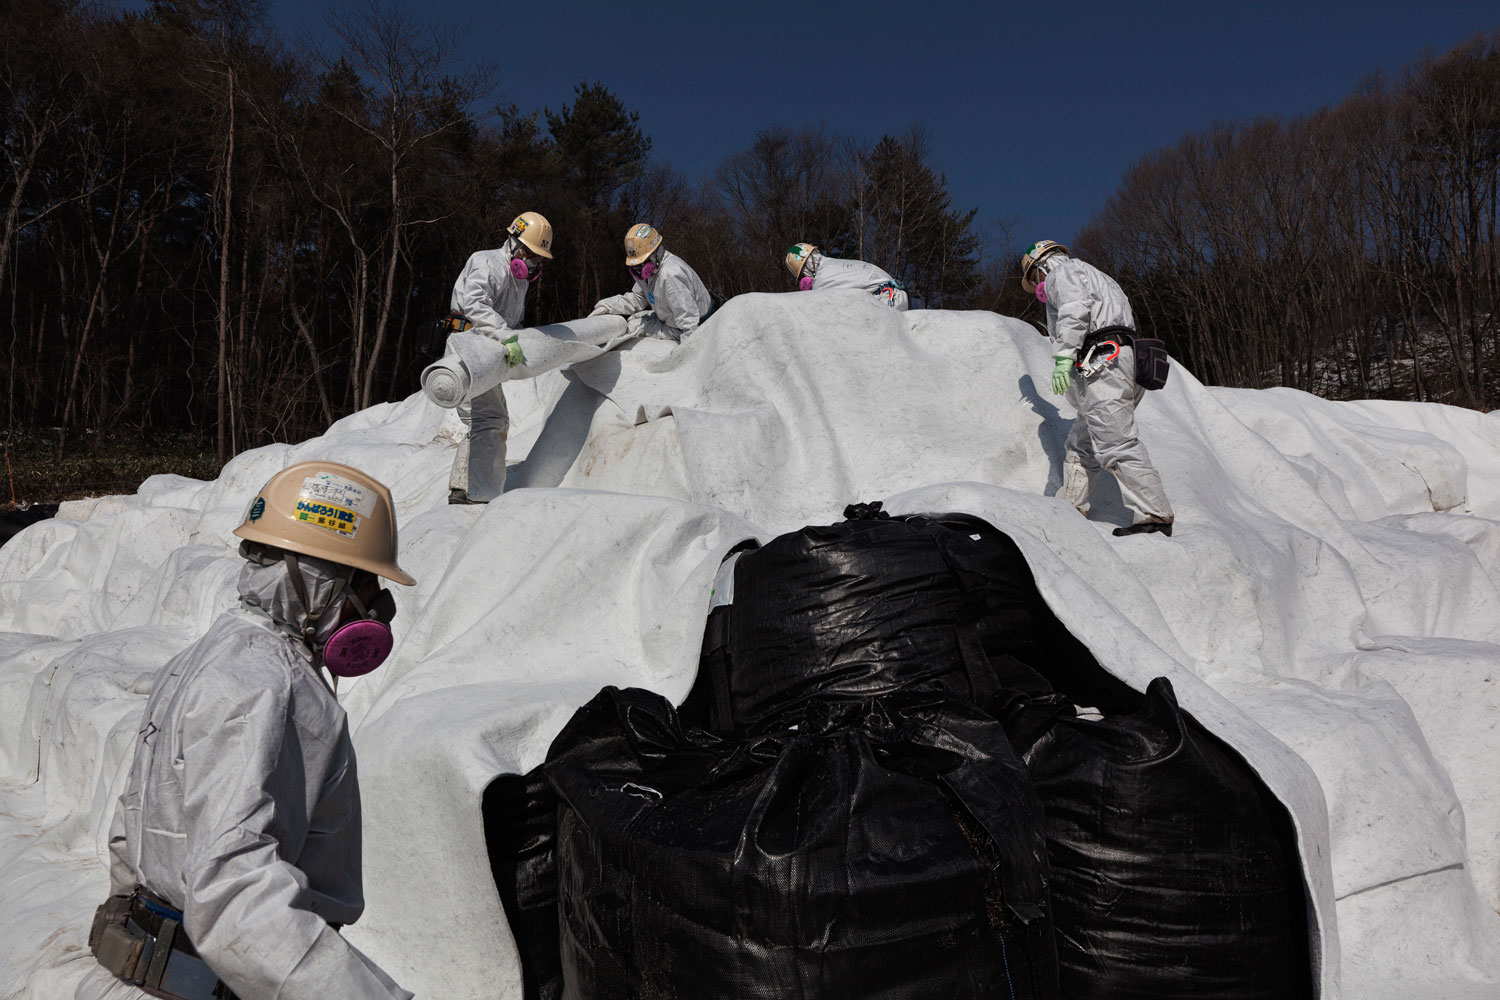 Feb. 24, 2012. Fukushima Prefecture, Japan. Workers cover bags of soil contaminated by radiation.